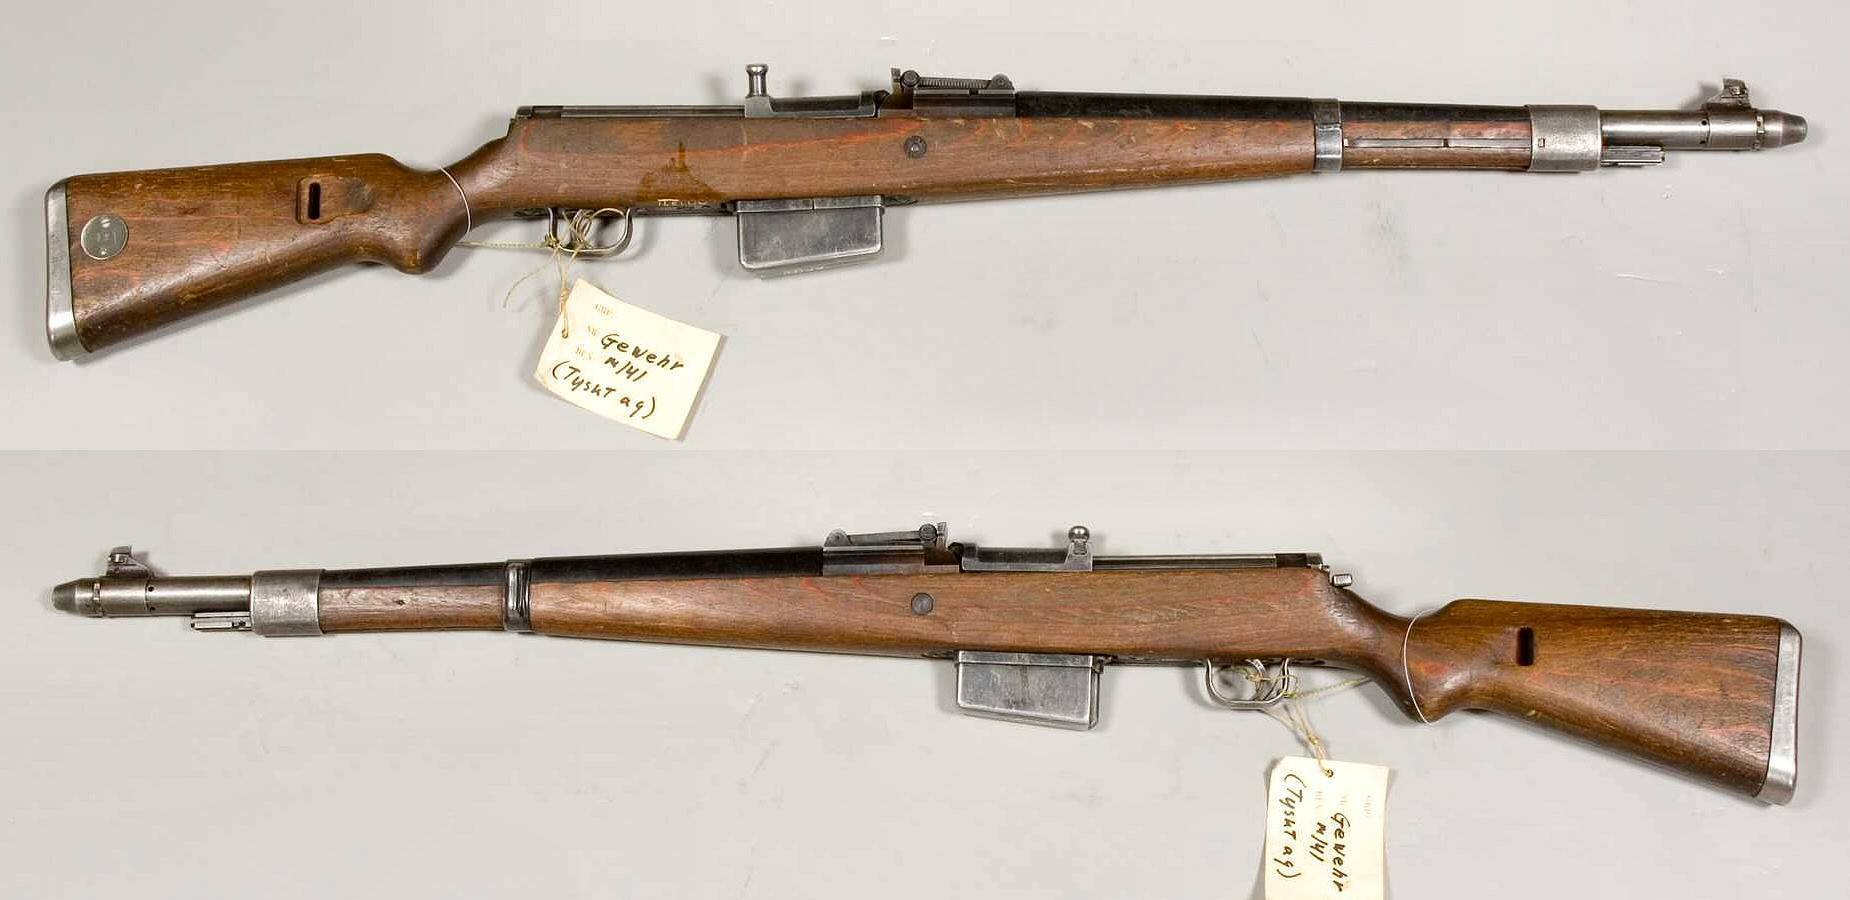 Volkssturmgewehr — wikipedia republished // wiki 2